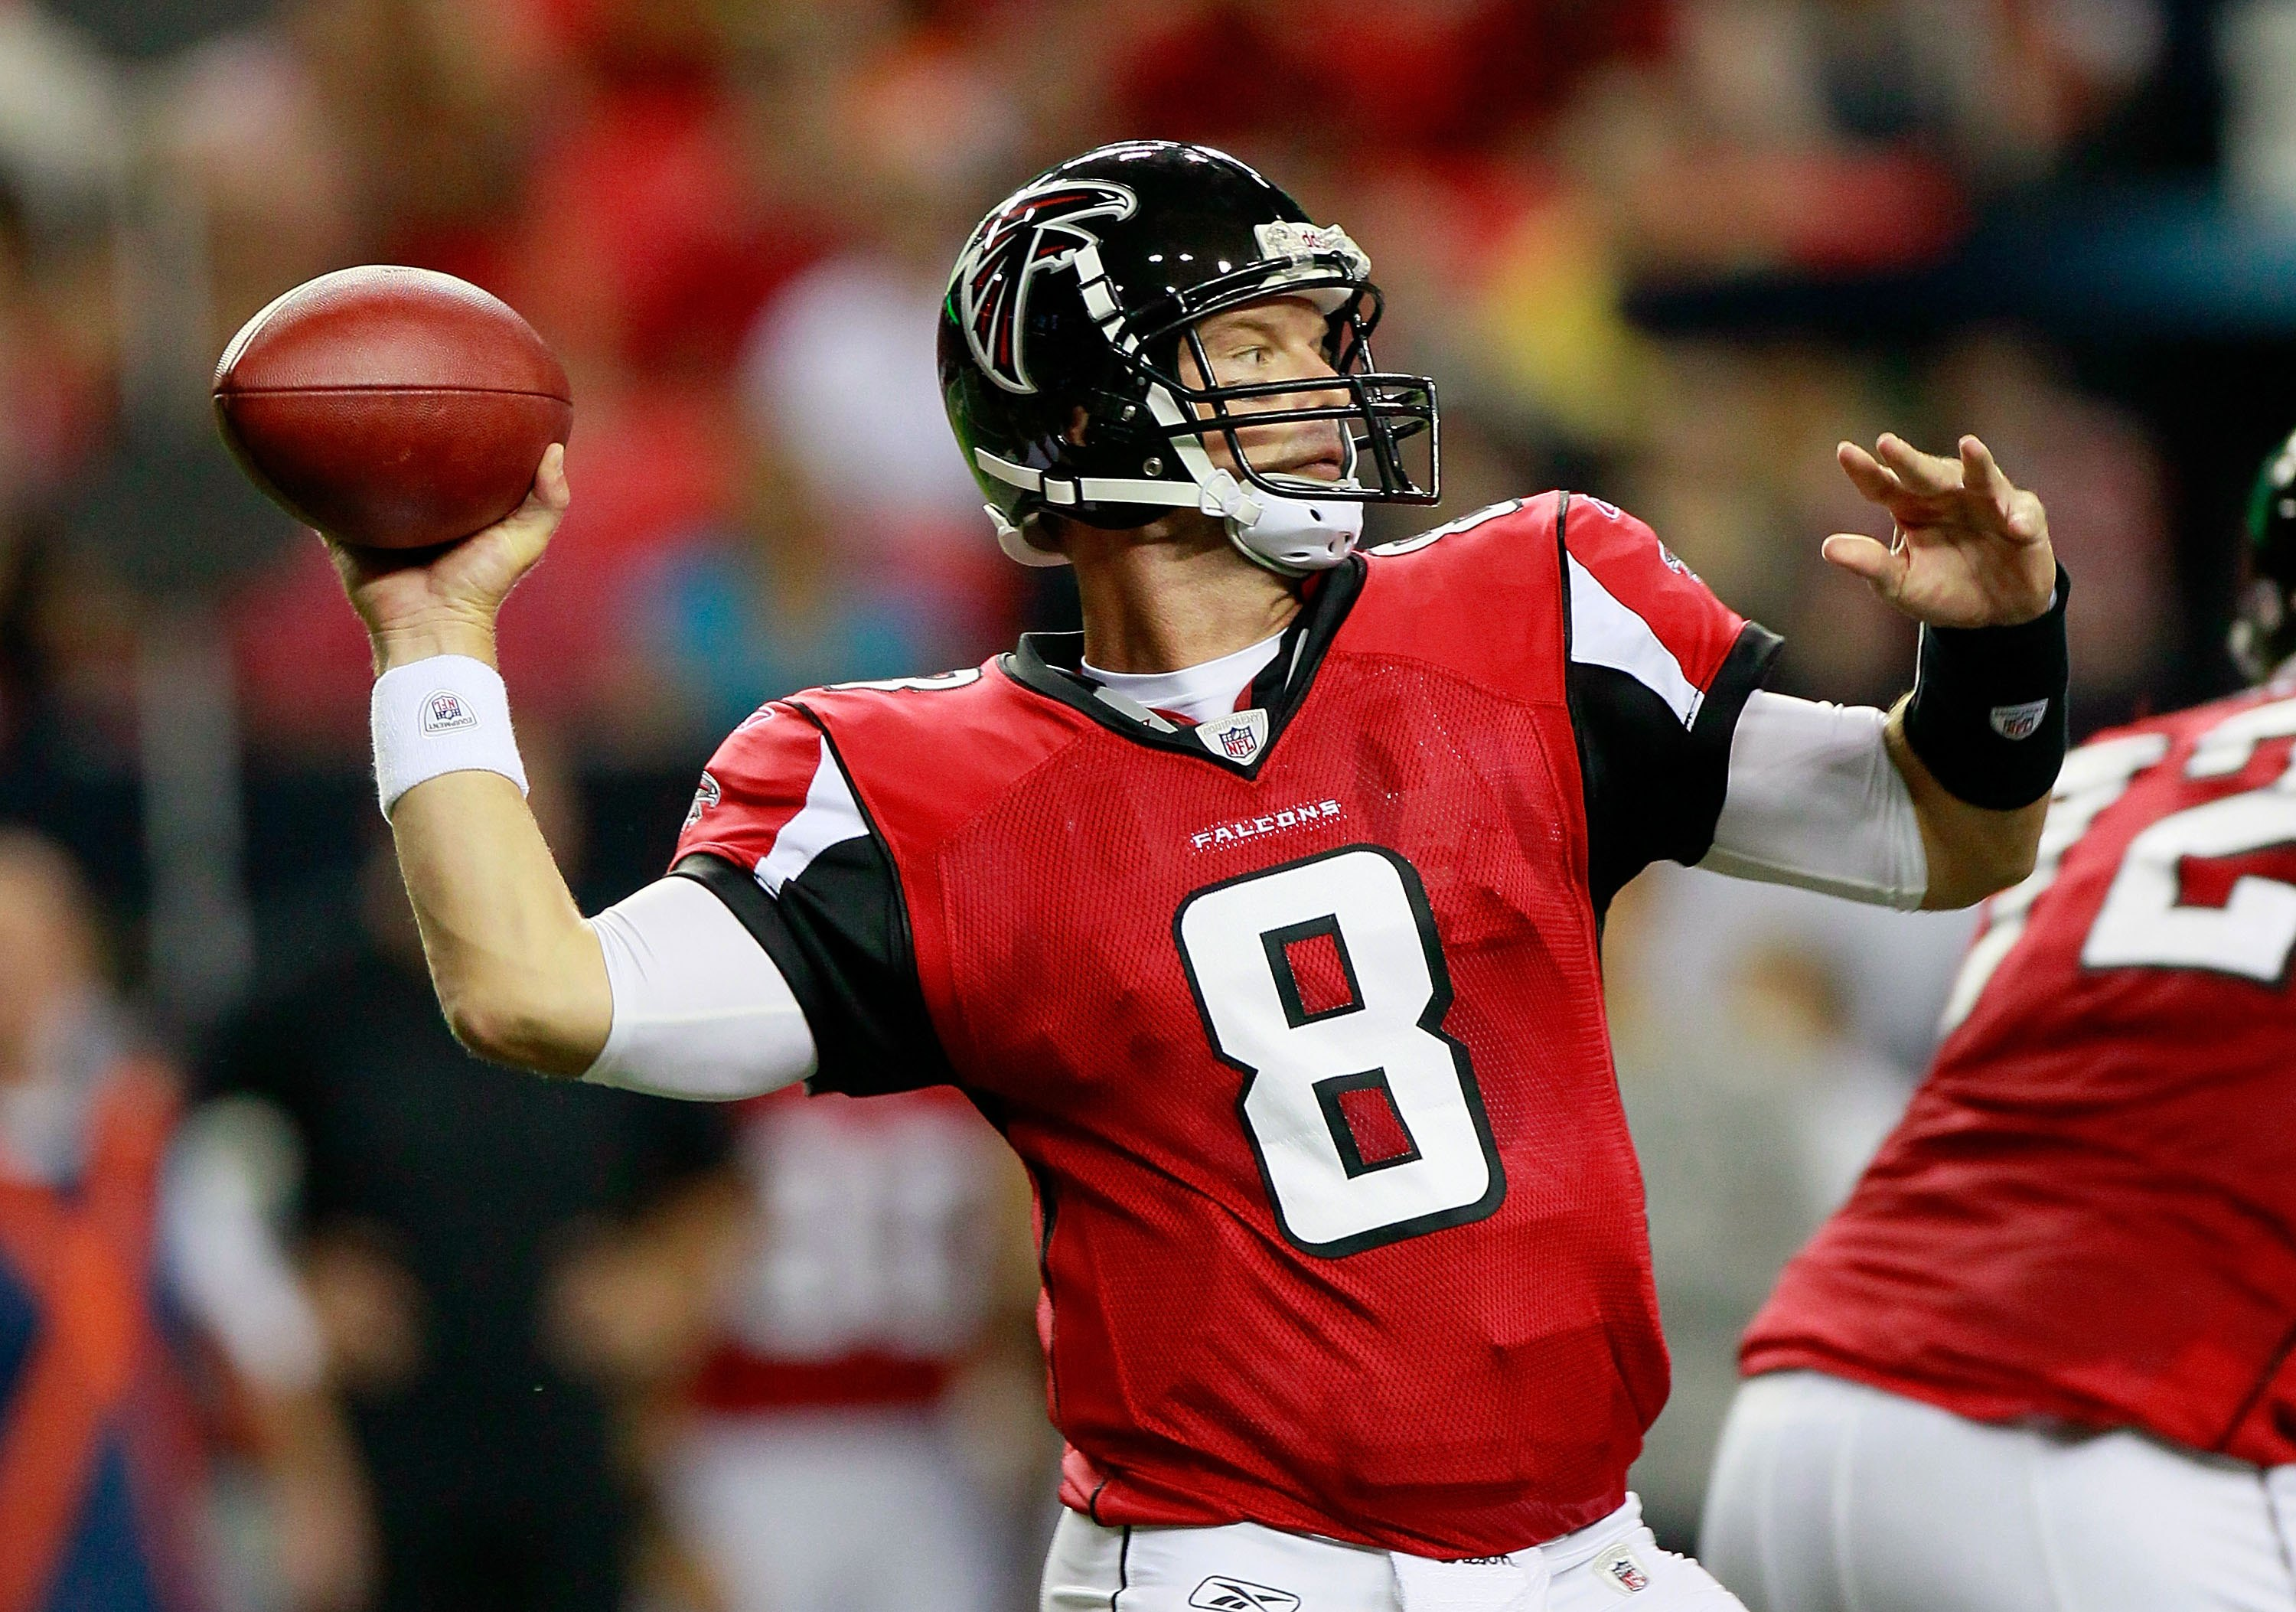 ATLANTA - AUGUST 13:  Quarterback Chris Redman #8 of the Atlanta Falcons against the Kansas City Chiefs at Georgia Dome on August 13, 2010 in Atlanta, Georgia.  (Photo by Kevin C. Cox/Getty Images)